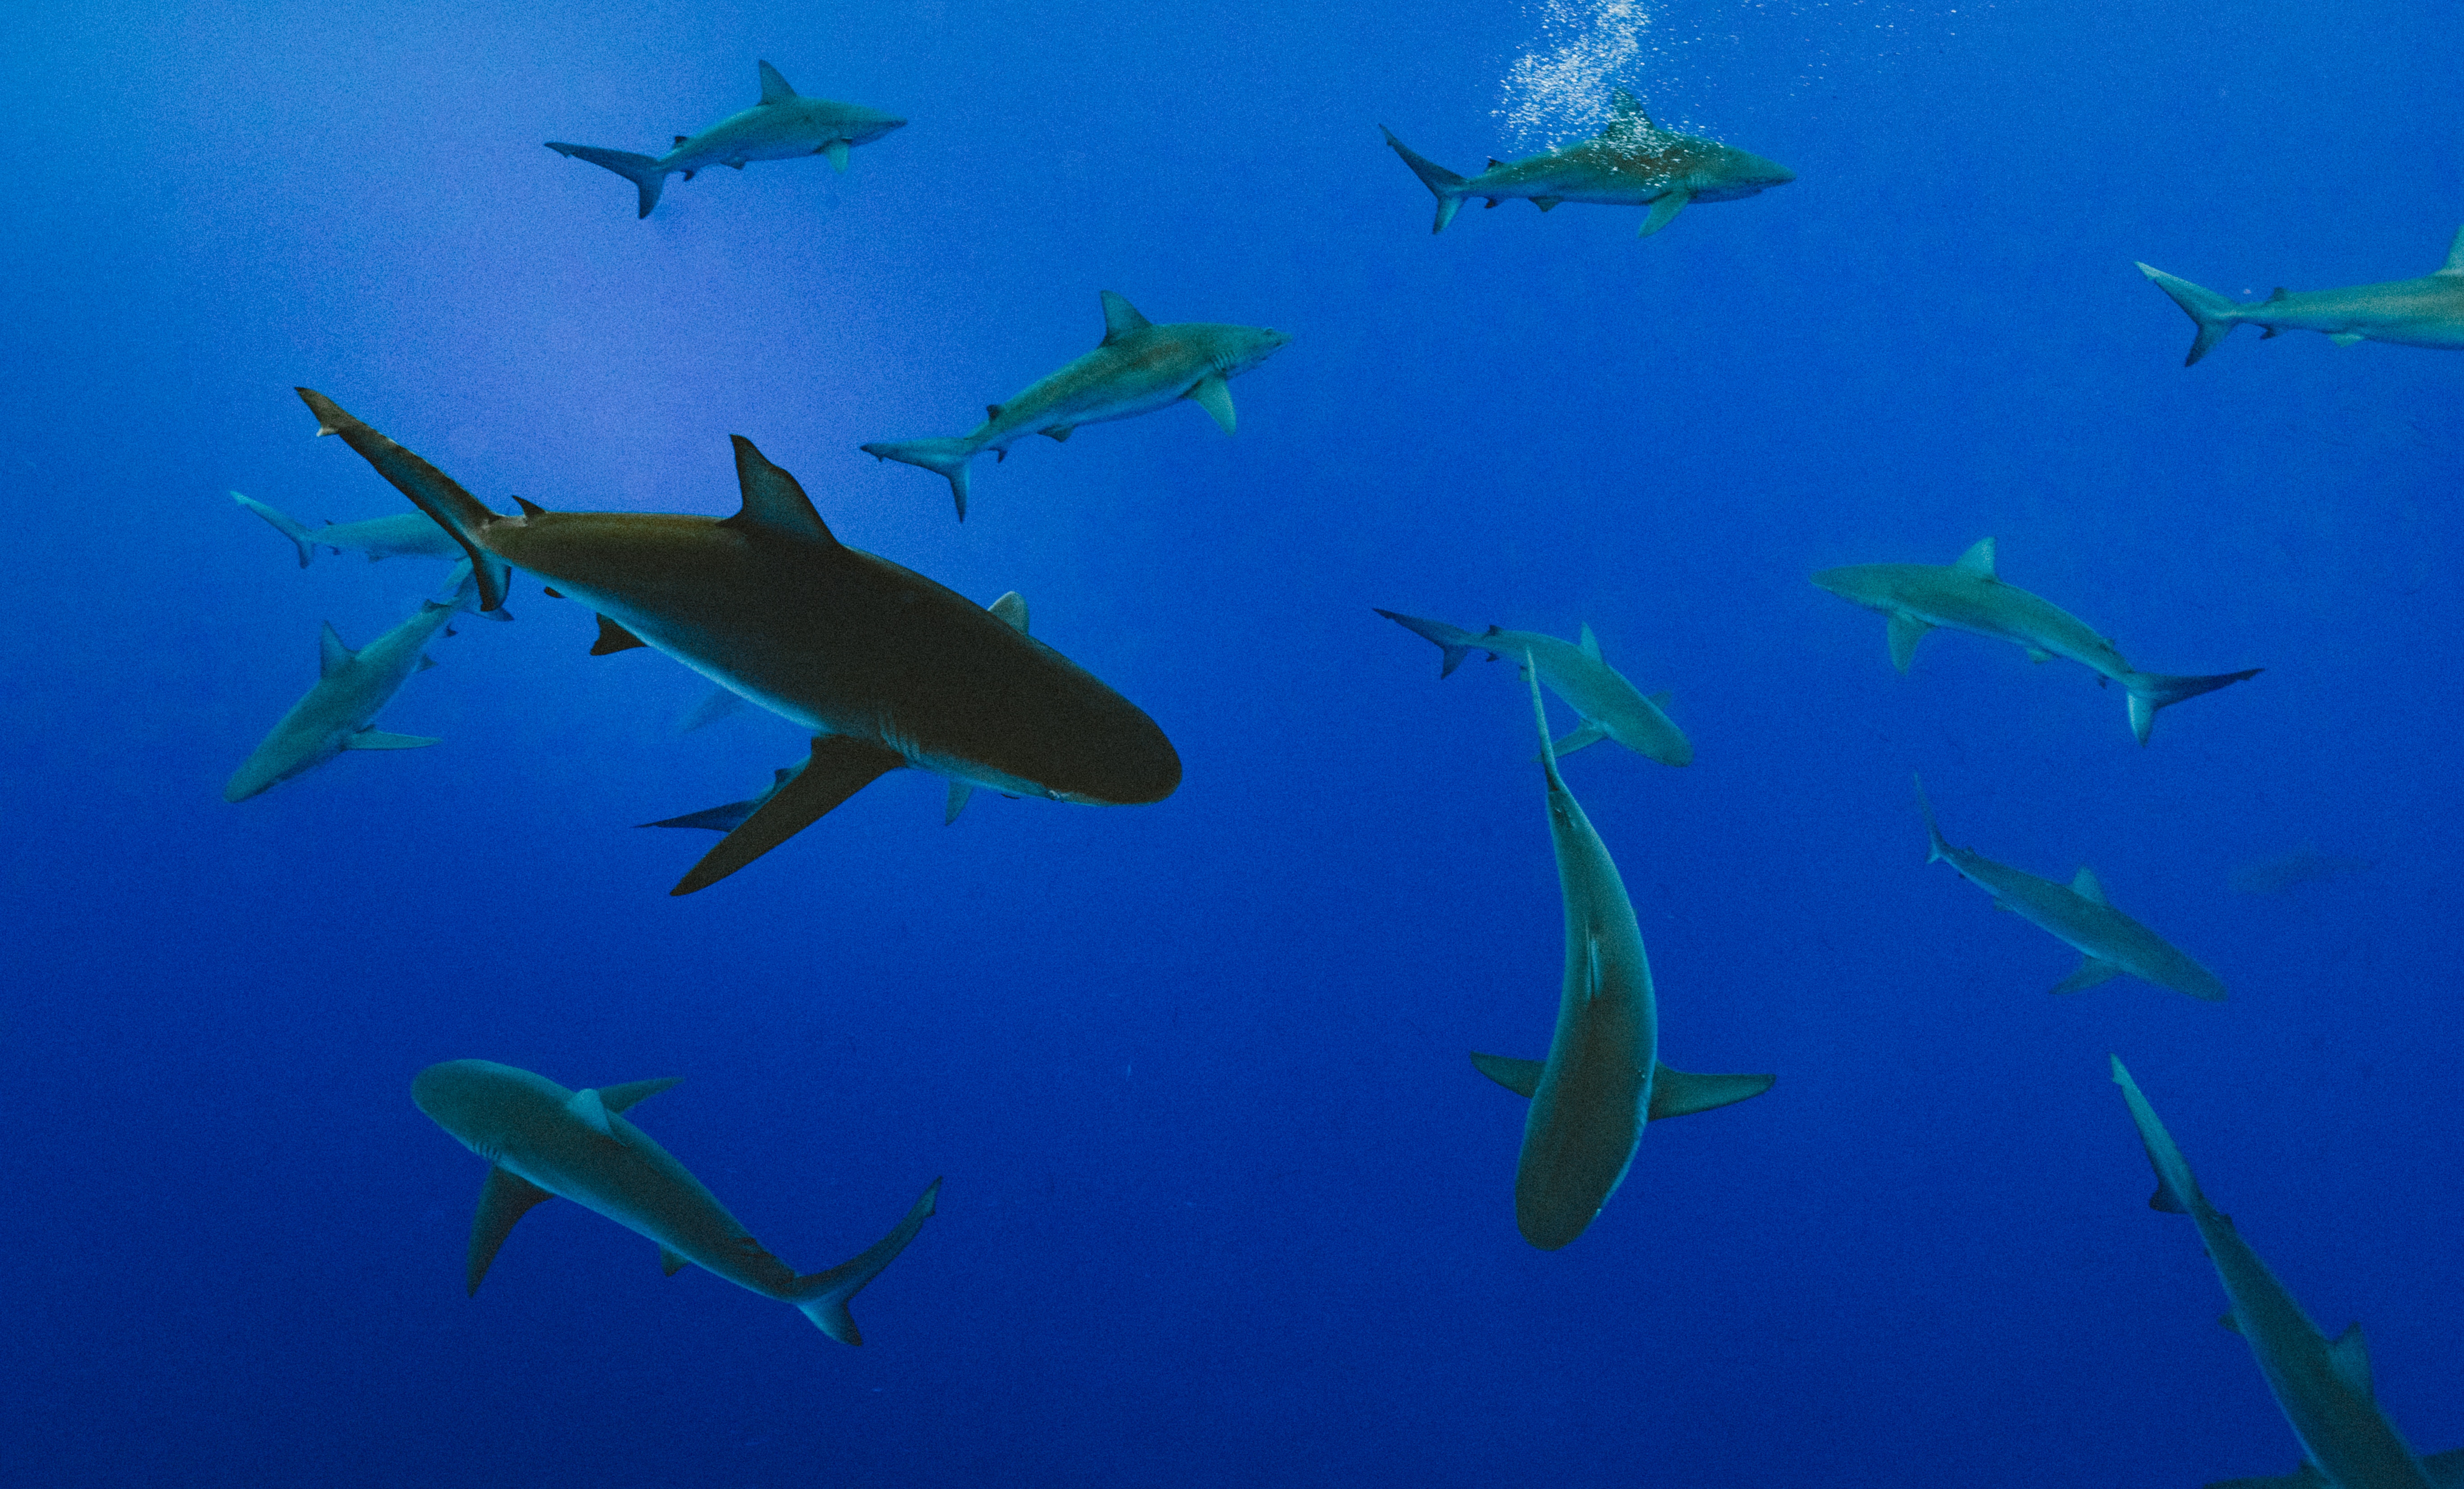 All sharks jumped in - Entrepreneurs and Pitches that